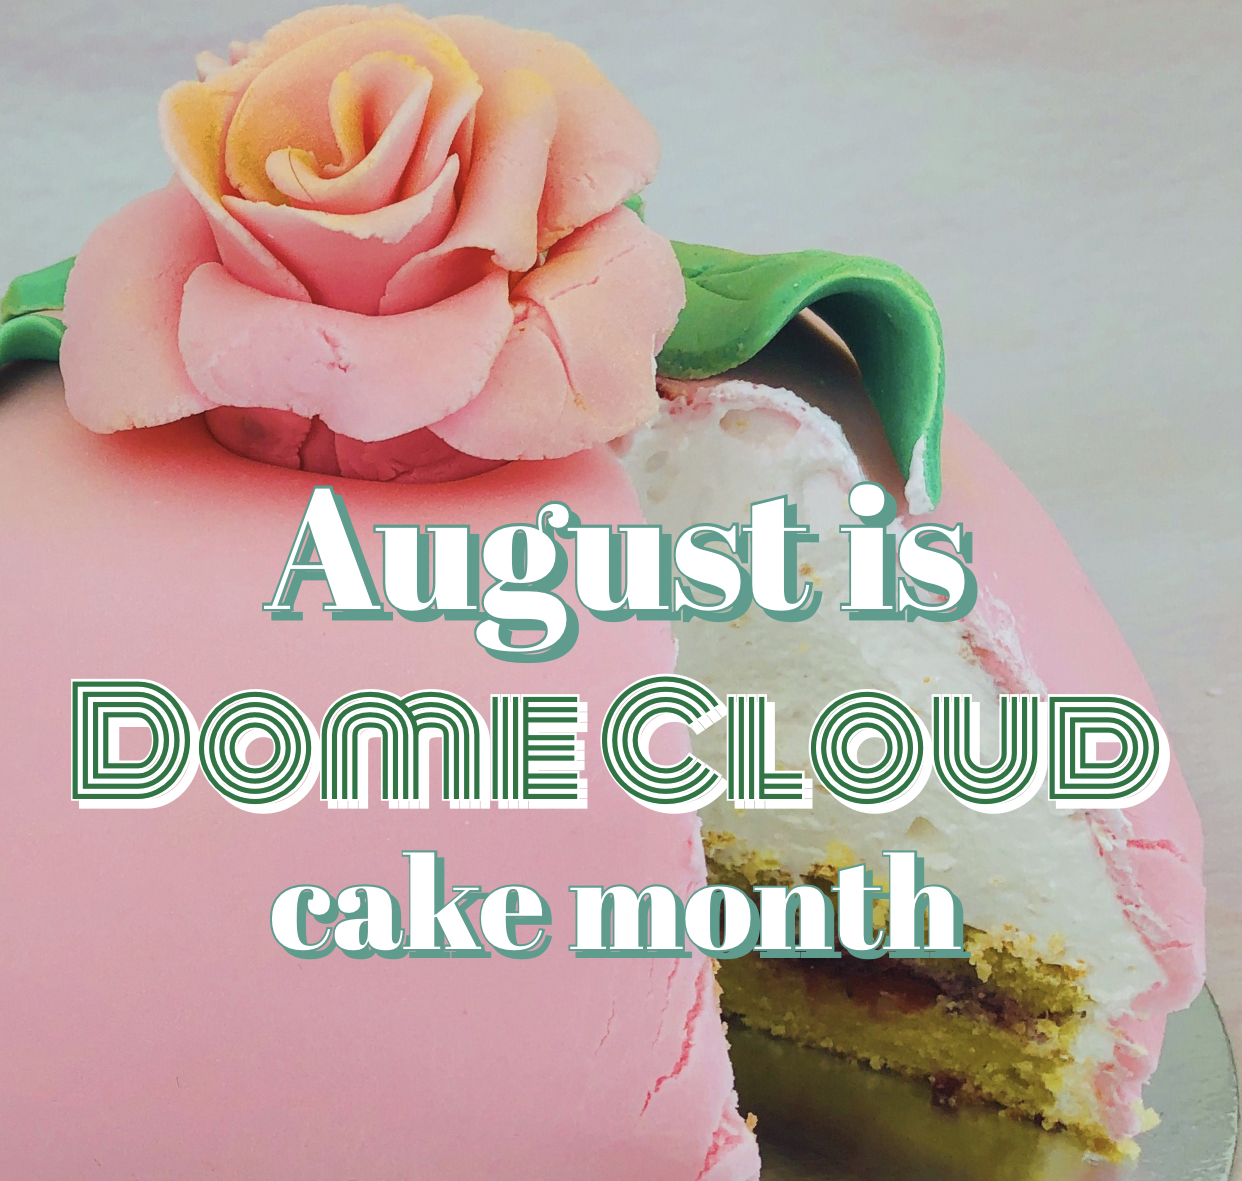 August Dome cloud cake.jpg